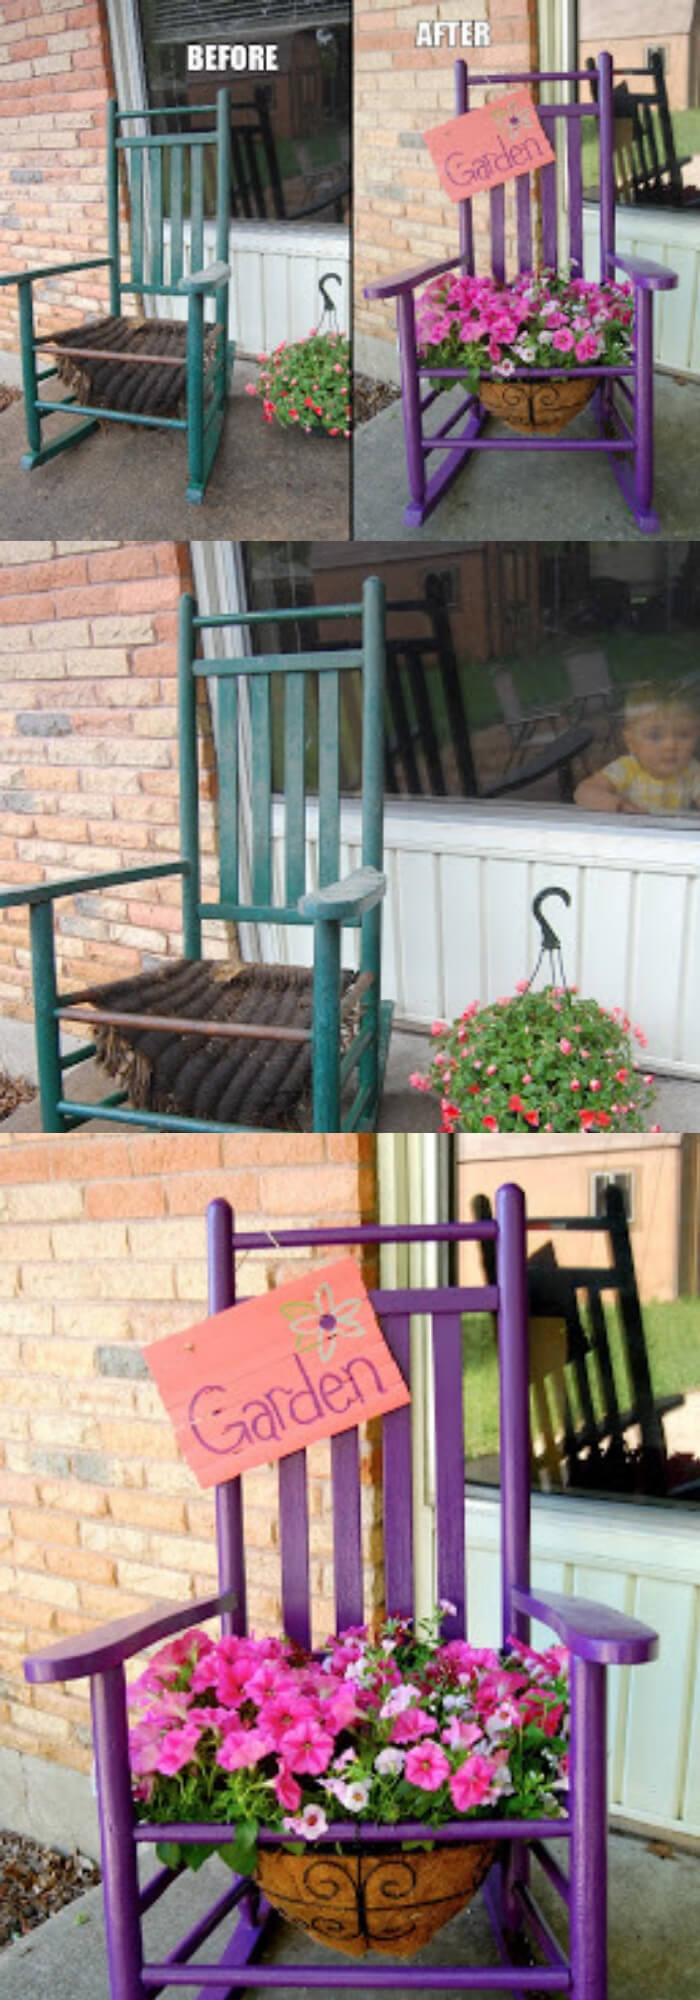 The rocking chair planter (before and after)   Creative Upcycled DIY Chair Planter Ideas For Your Garden